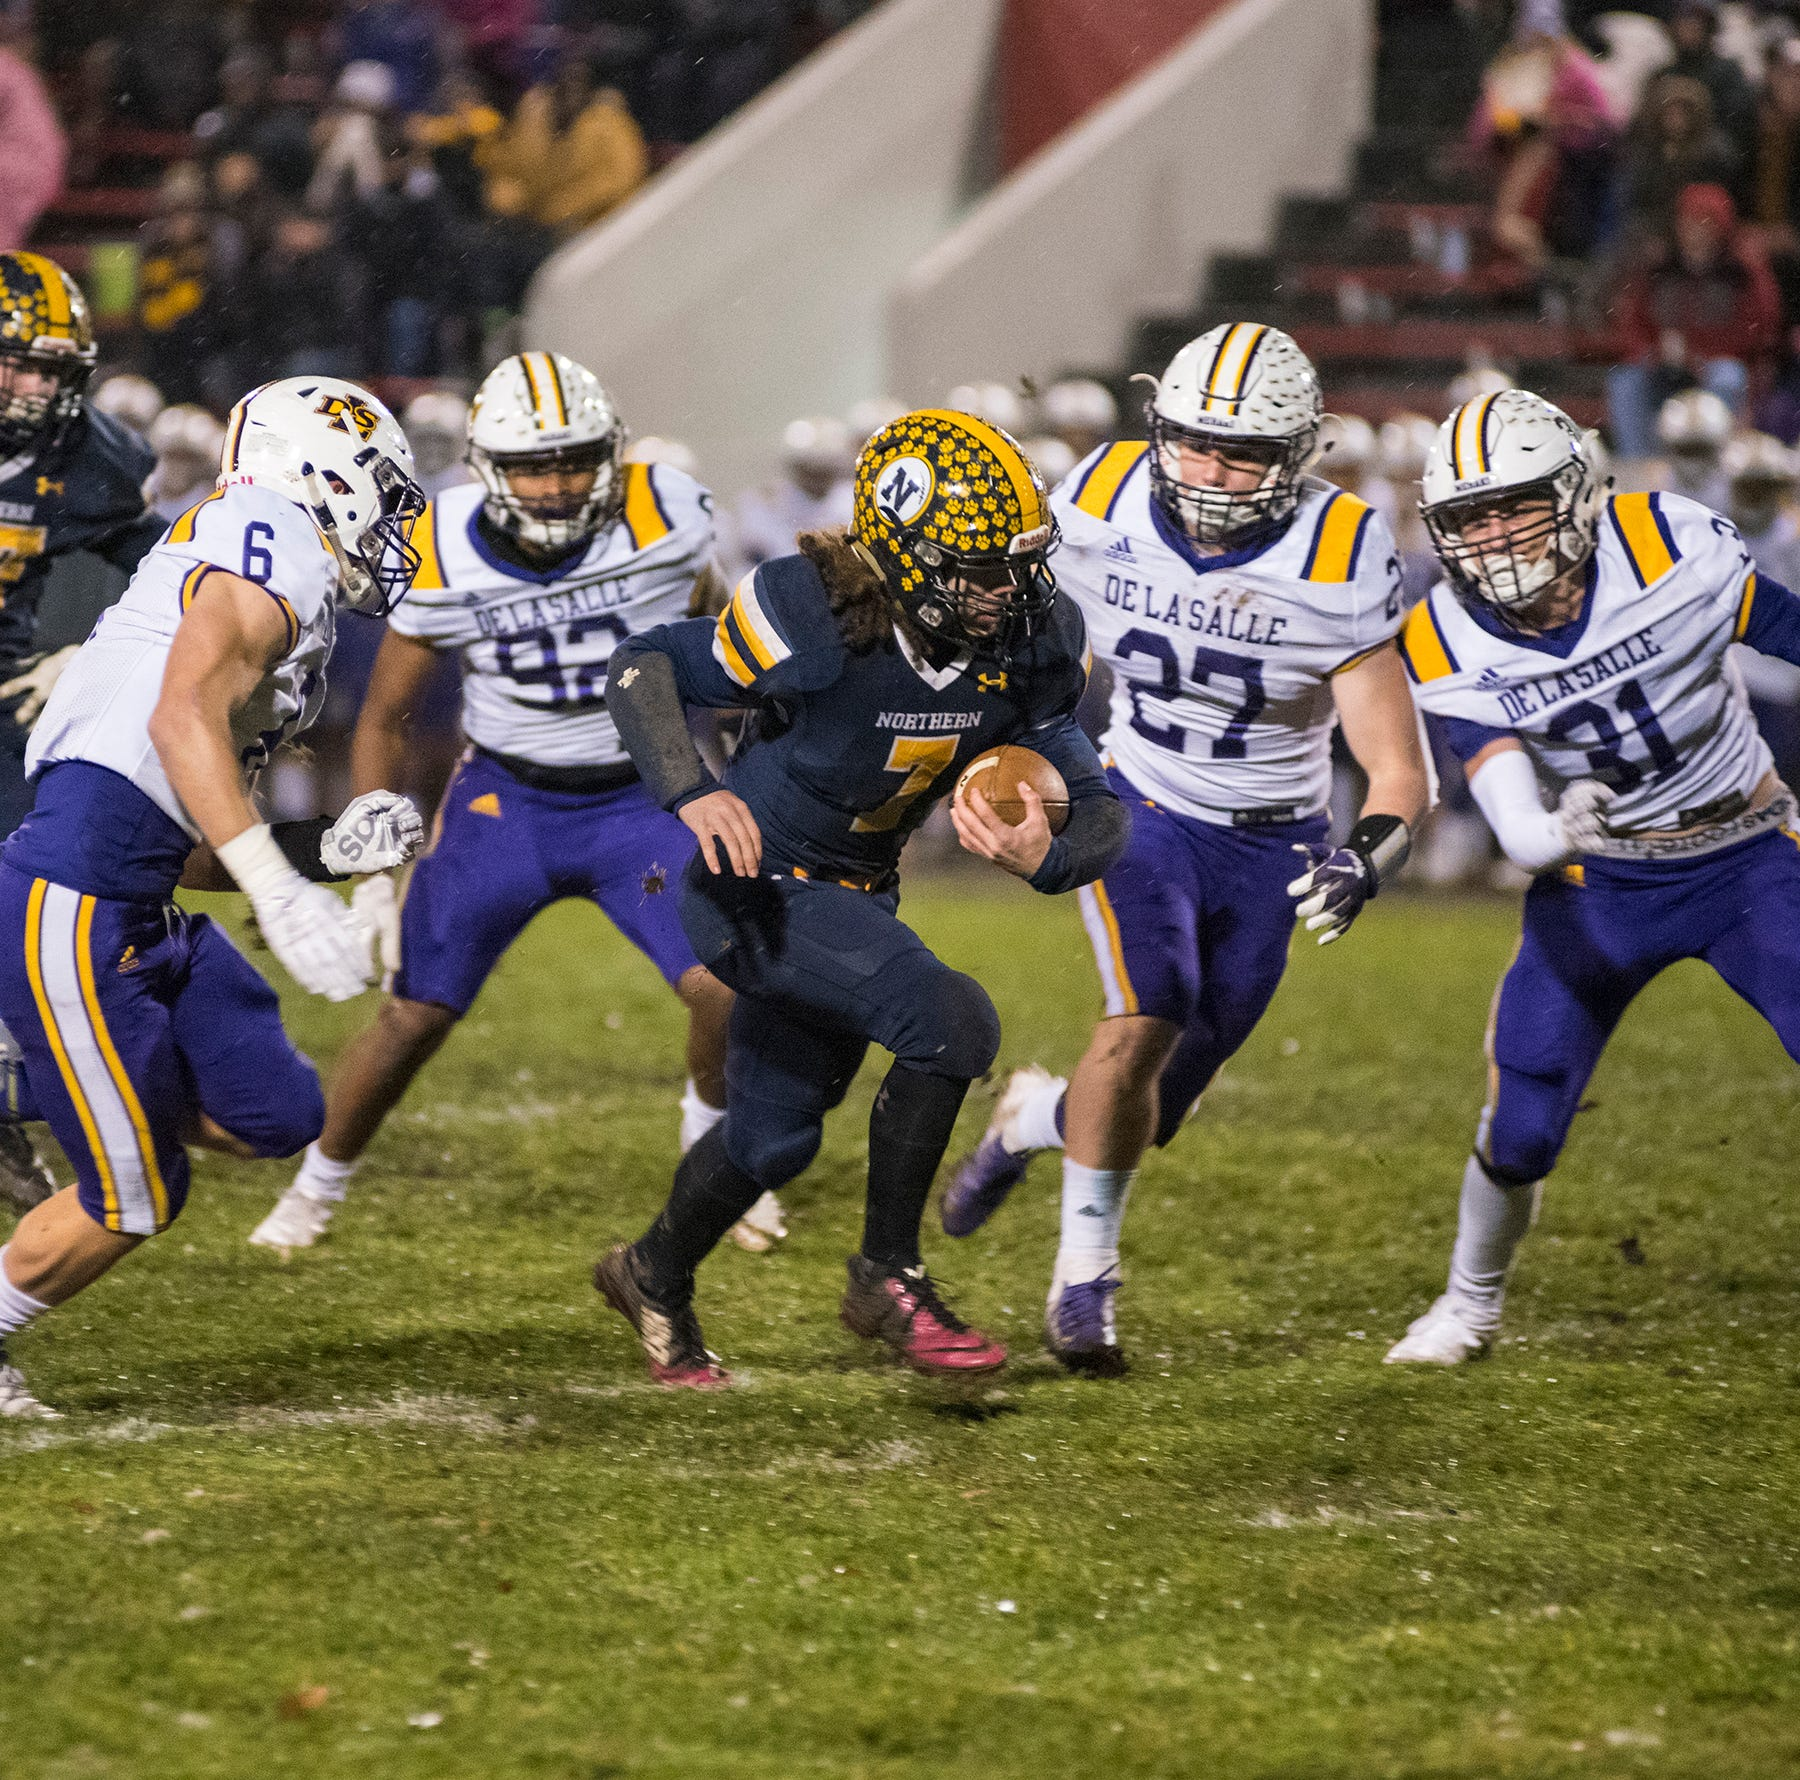 Prep Football: Port Huron Northern reflects on 2018 season